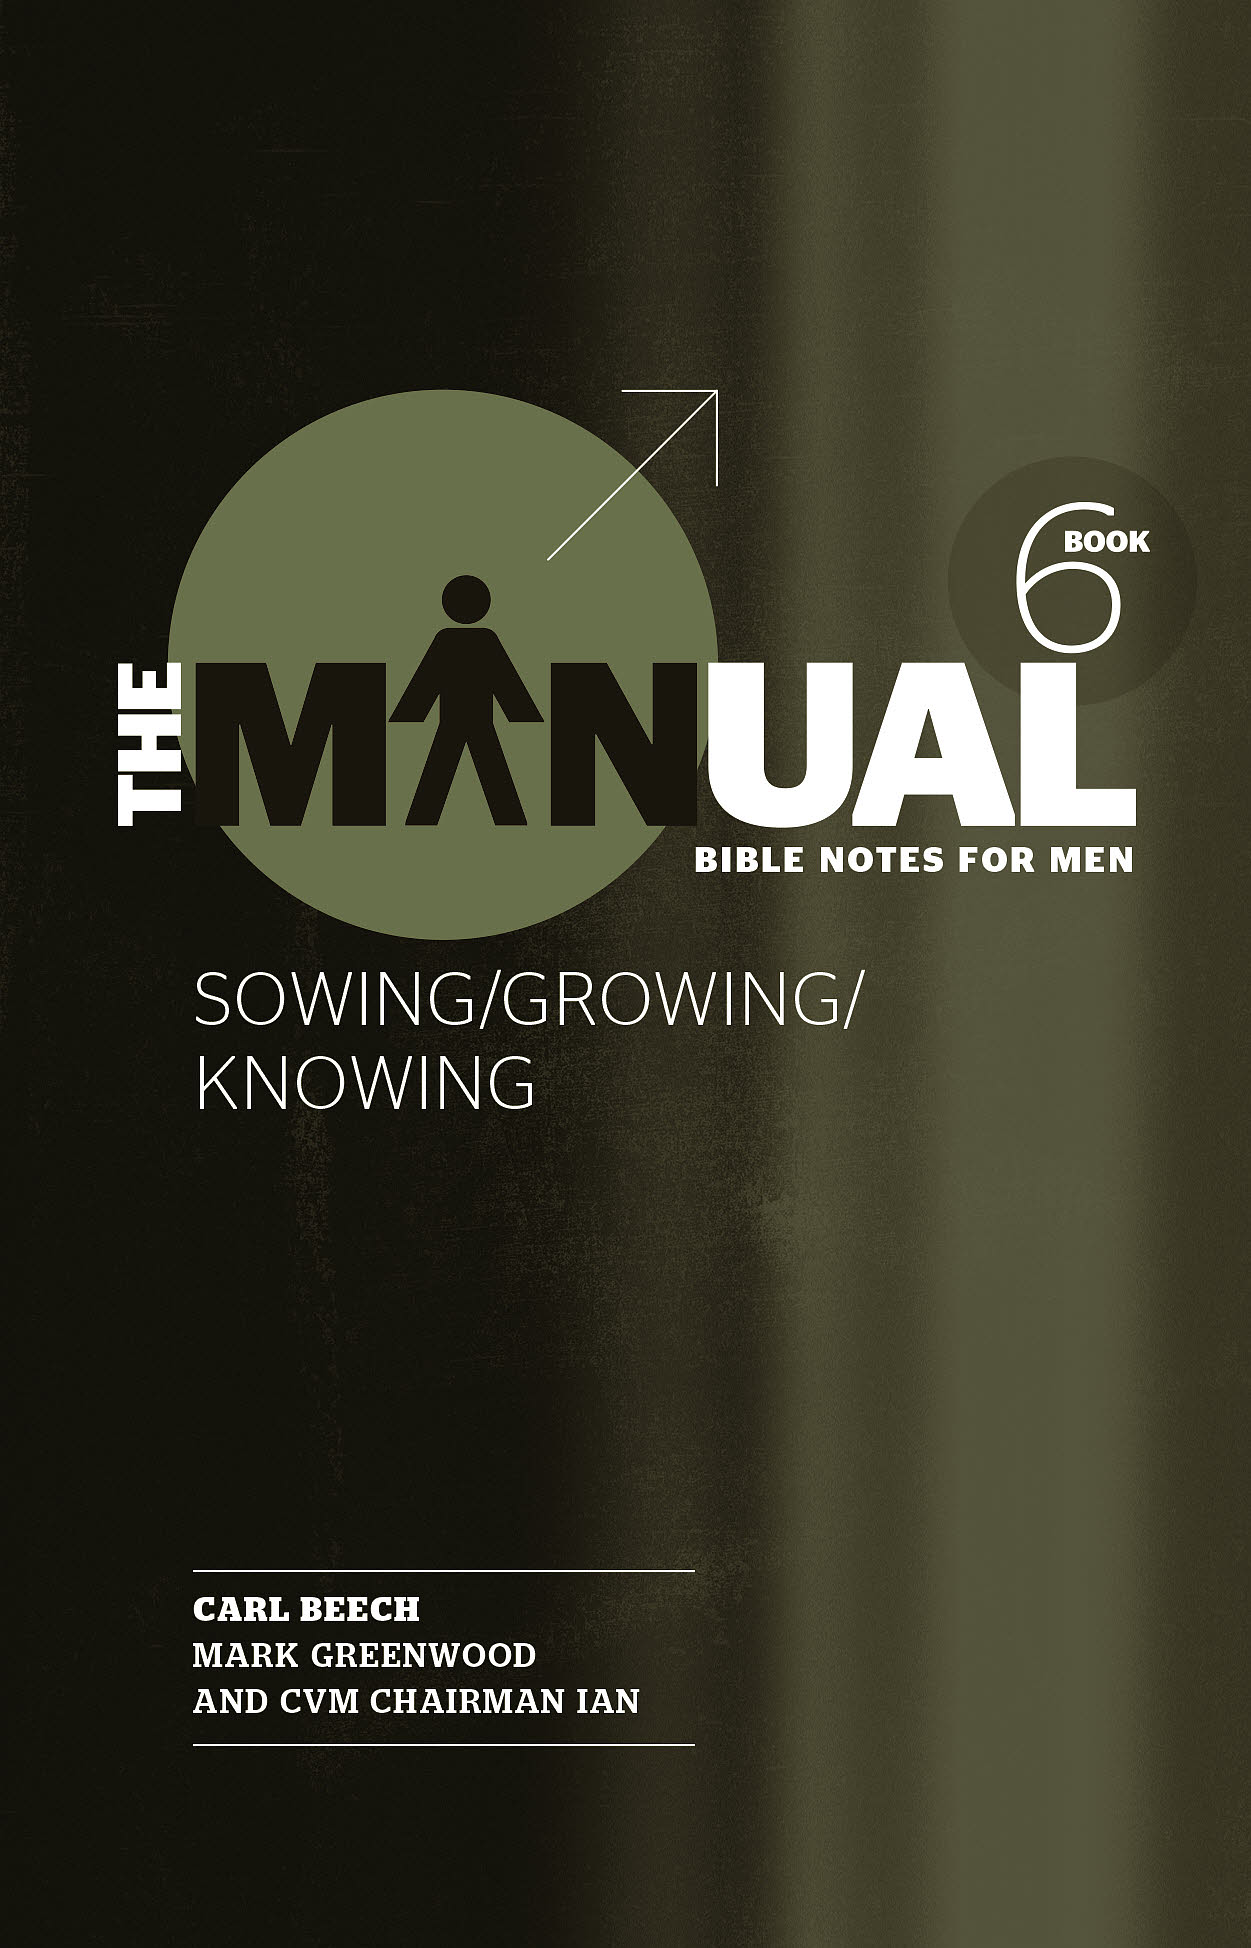 The Manual - Book 6 Paperback. Bible Notes for Men: ...